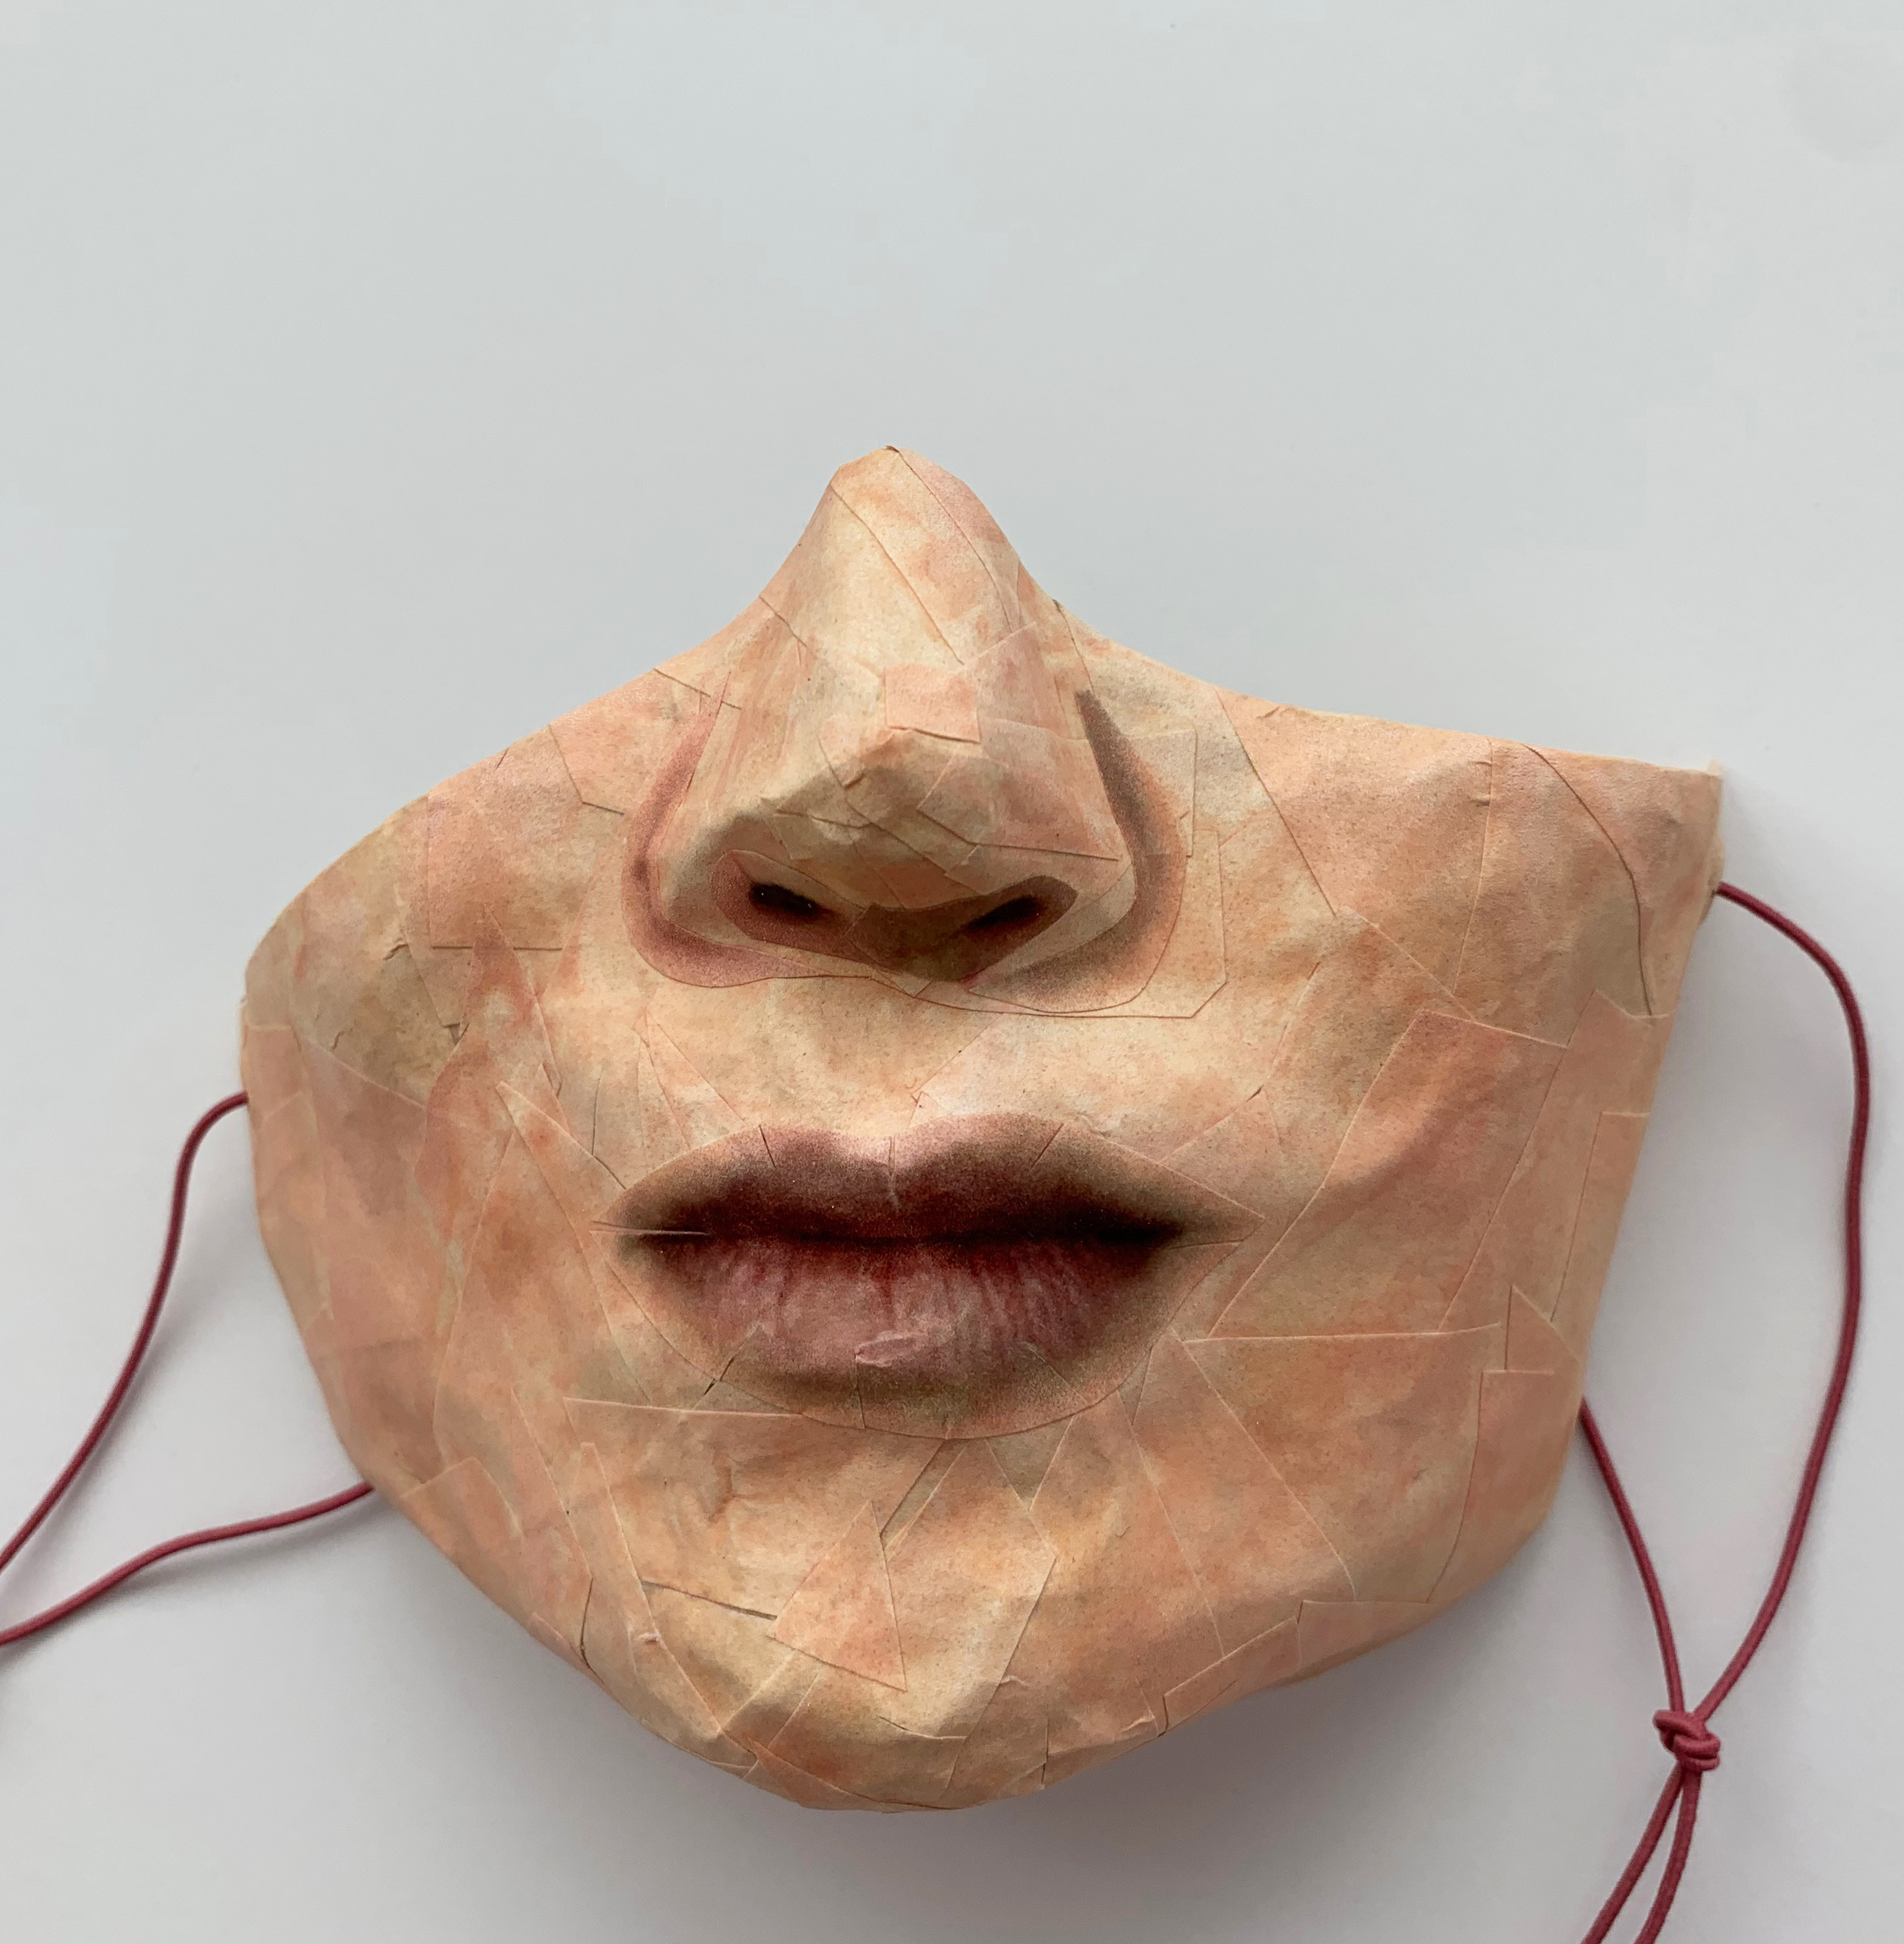 Self-Portrait (Covid Mask #1)